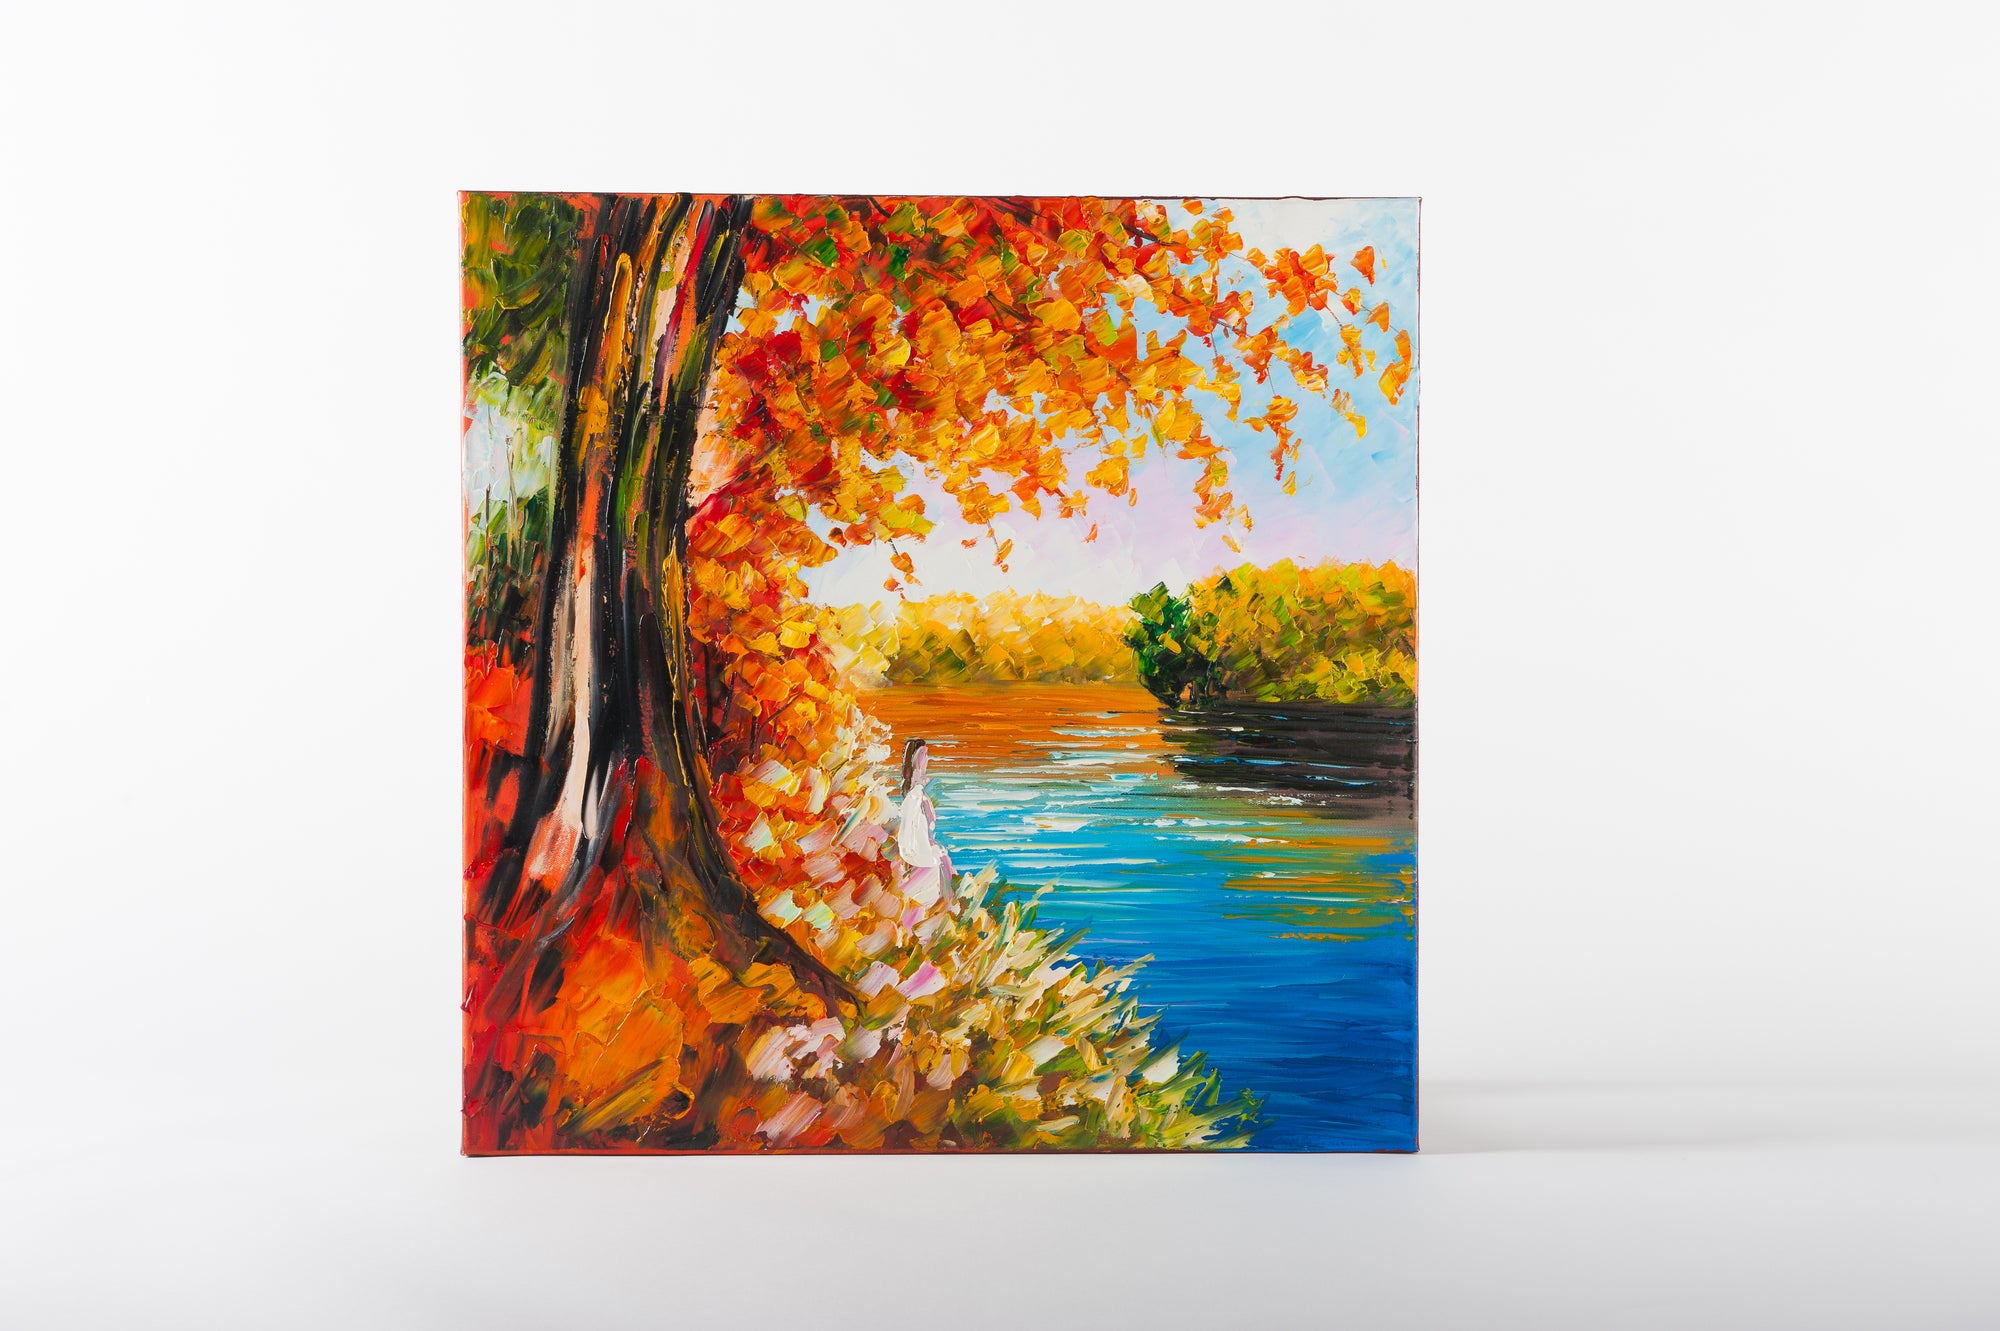 river walk hand painted wall art on canvas - Fervor + Hue